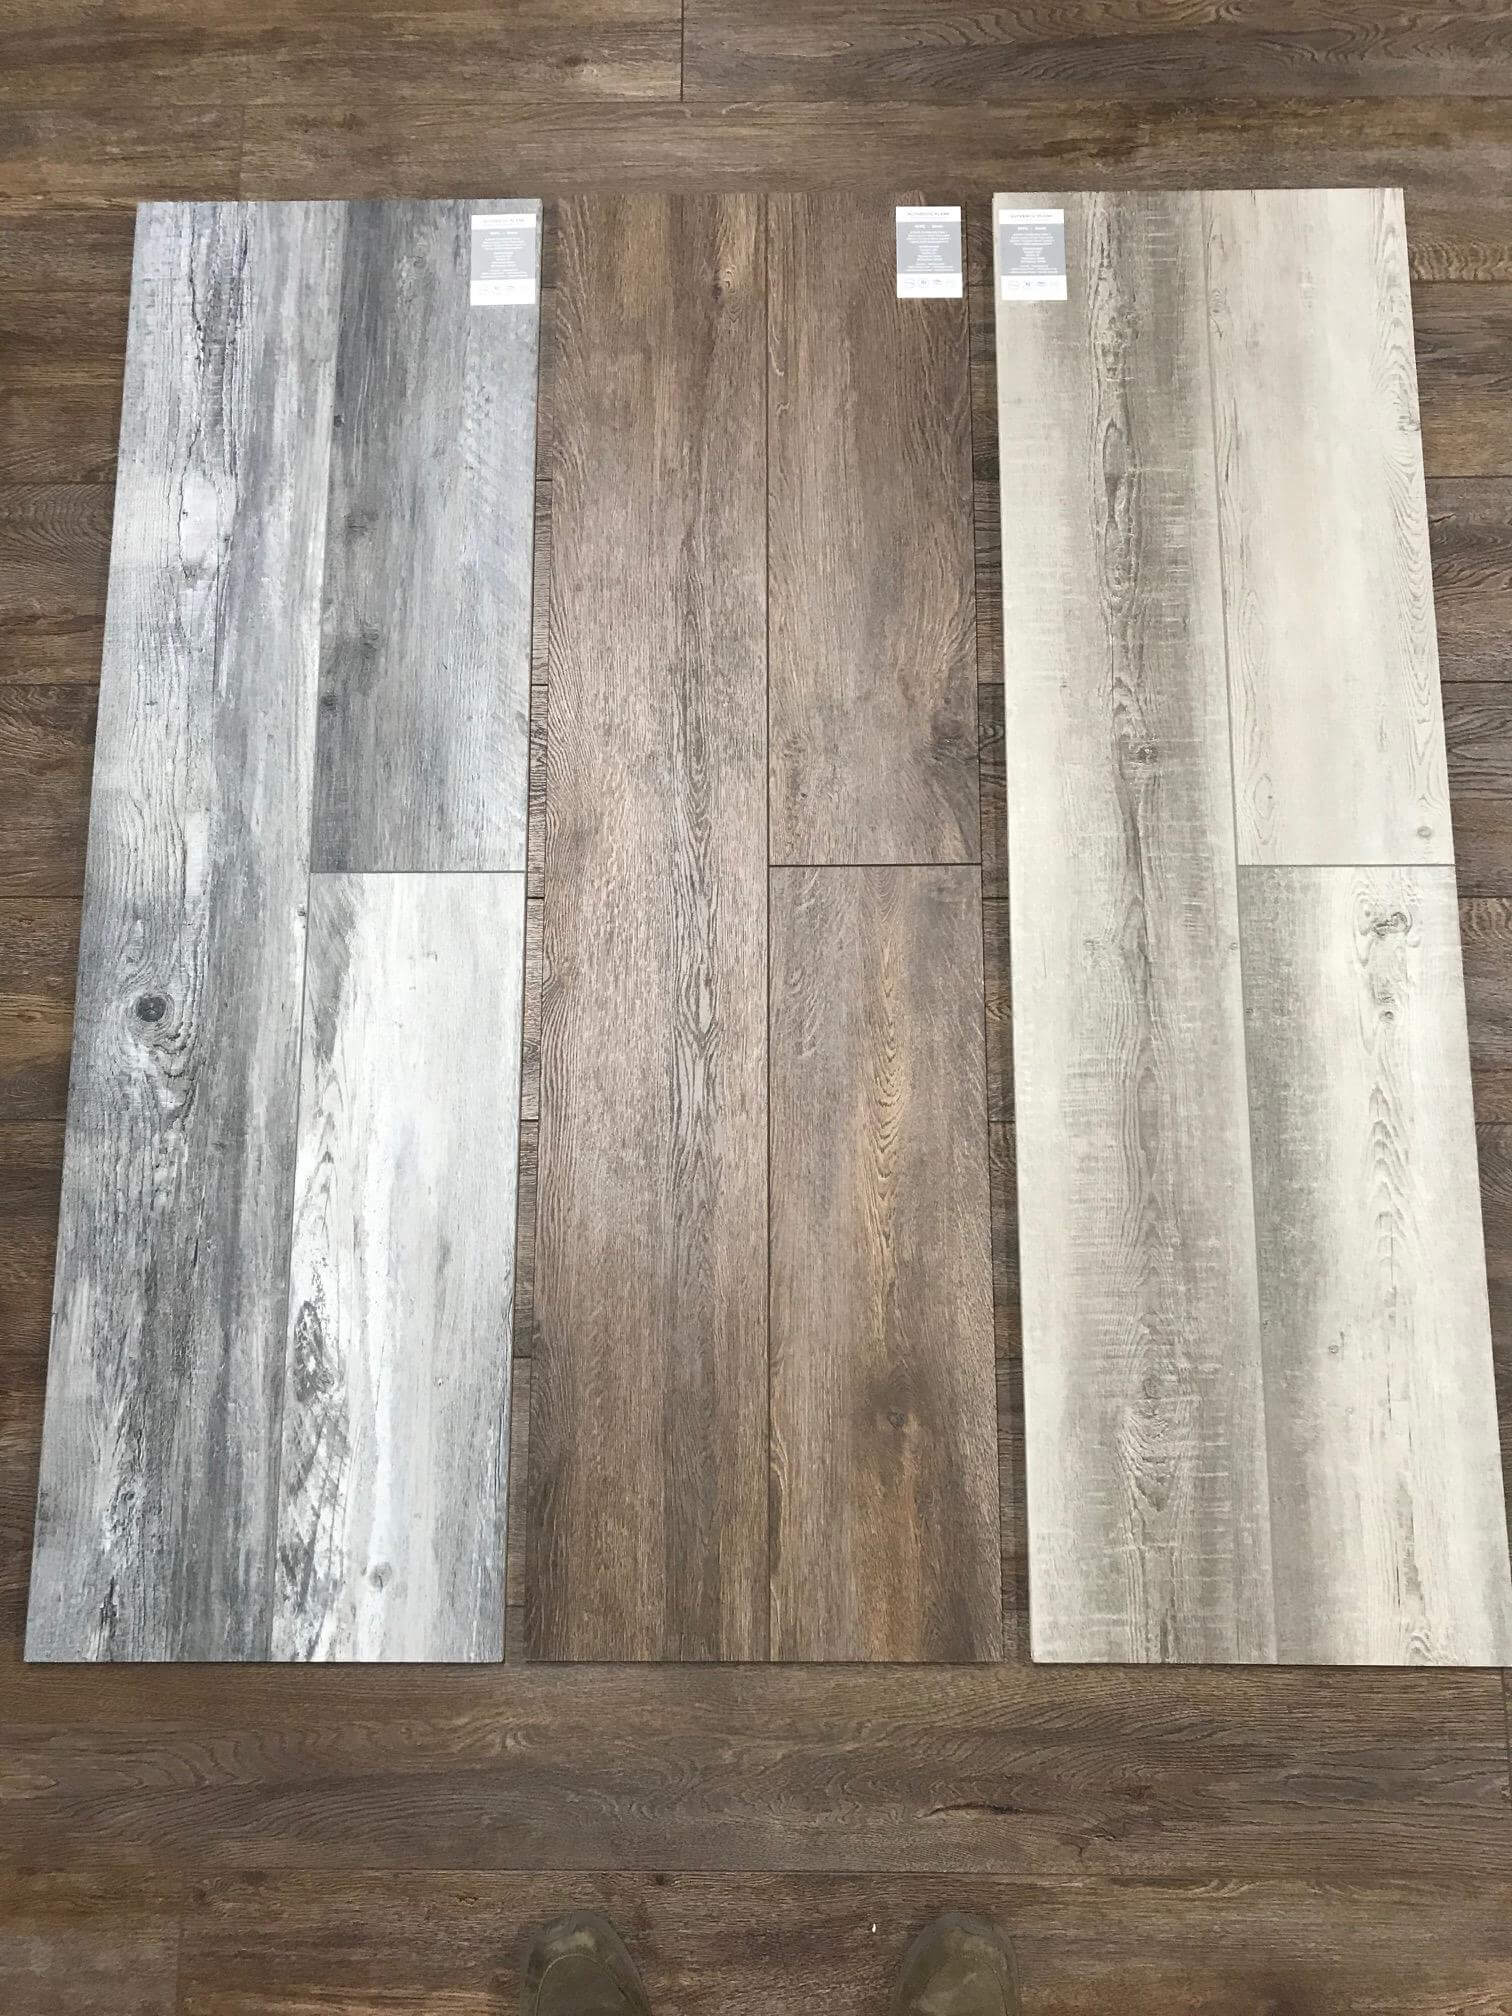 Side by side of three LVT floor samples at a Stanley Steemer showroom in Kalamazoo